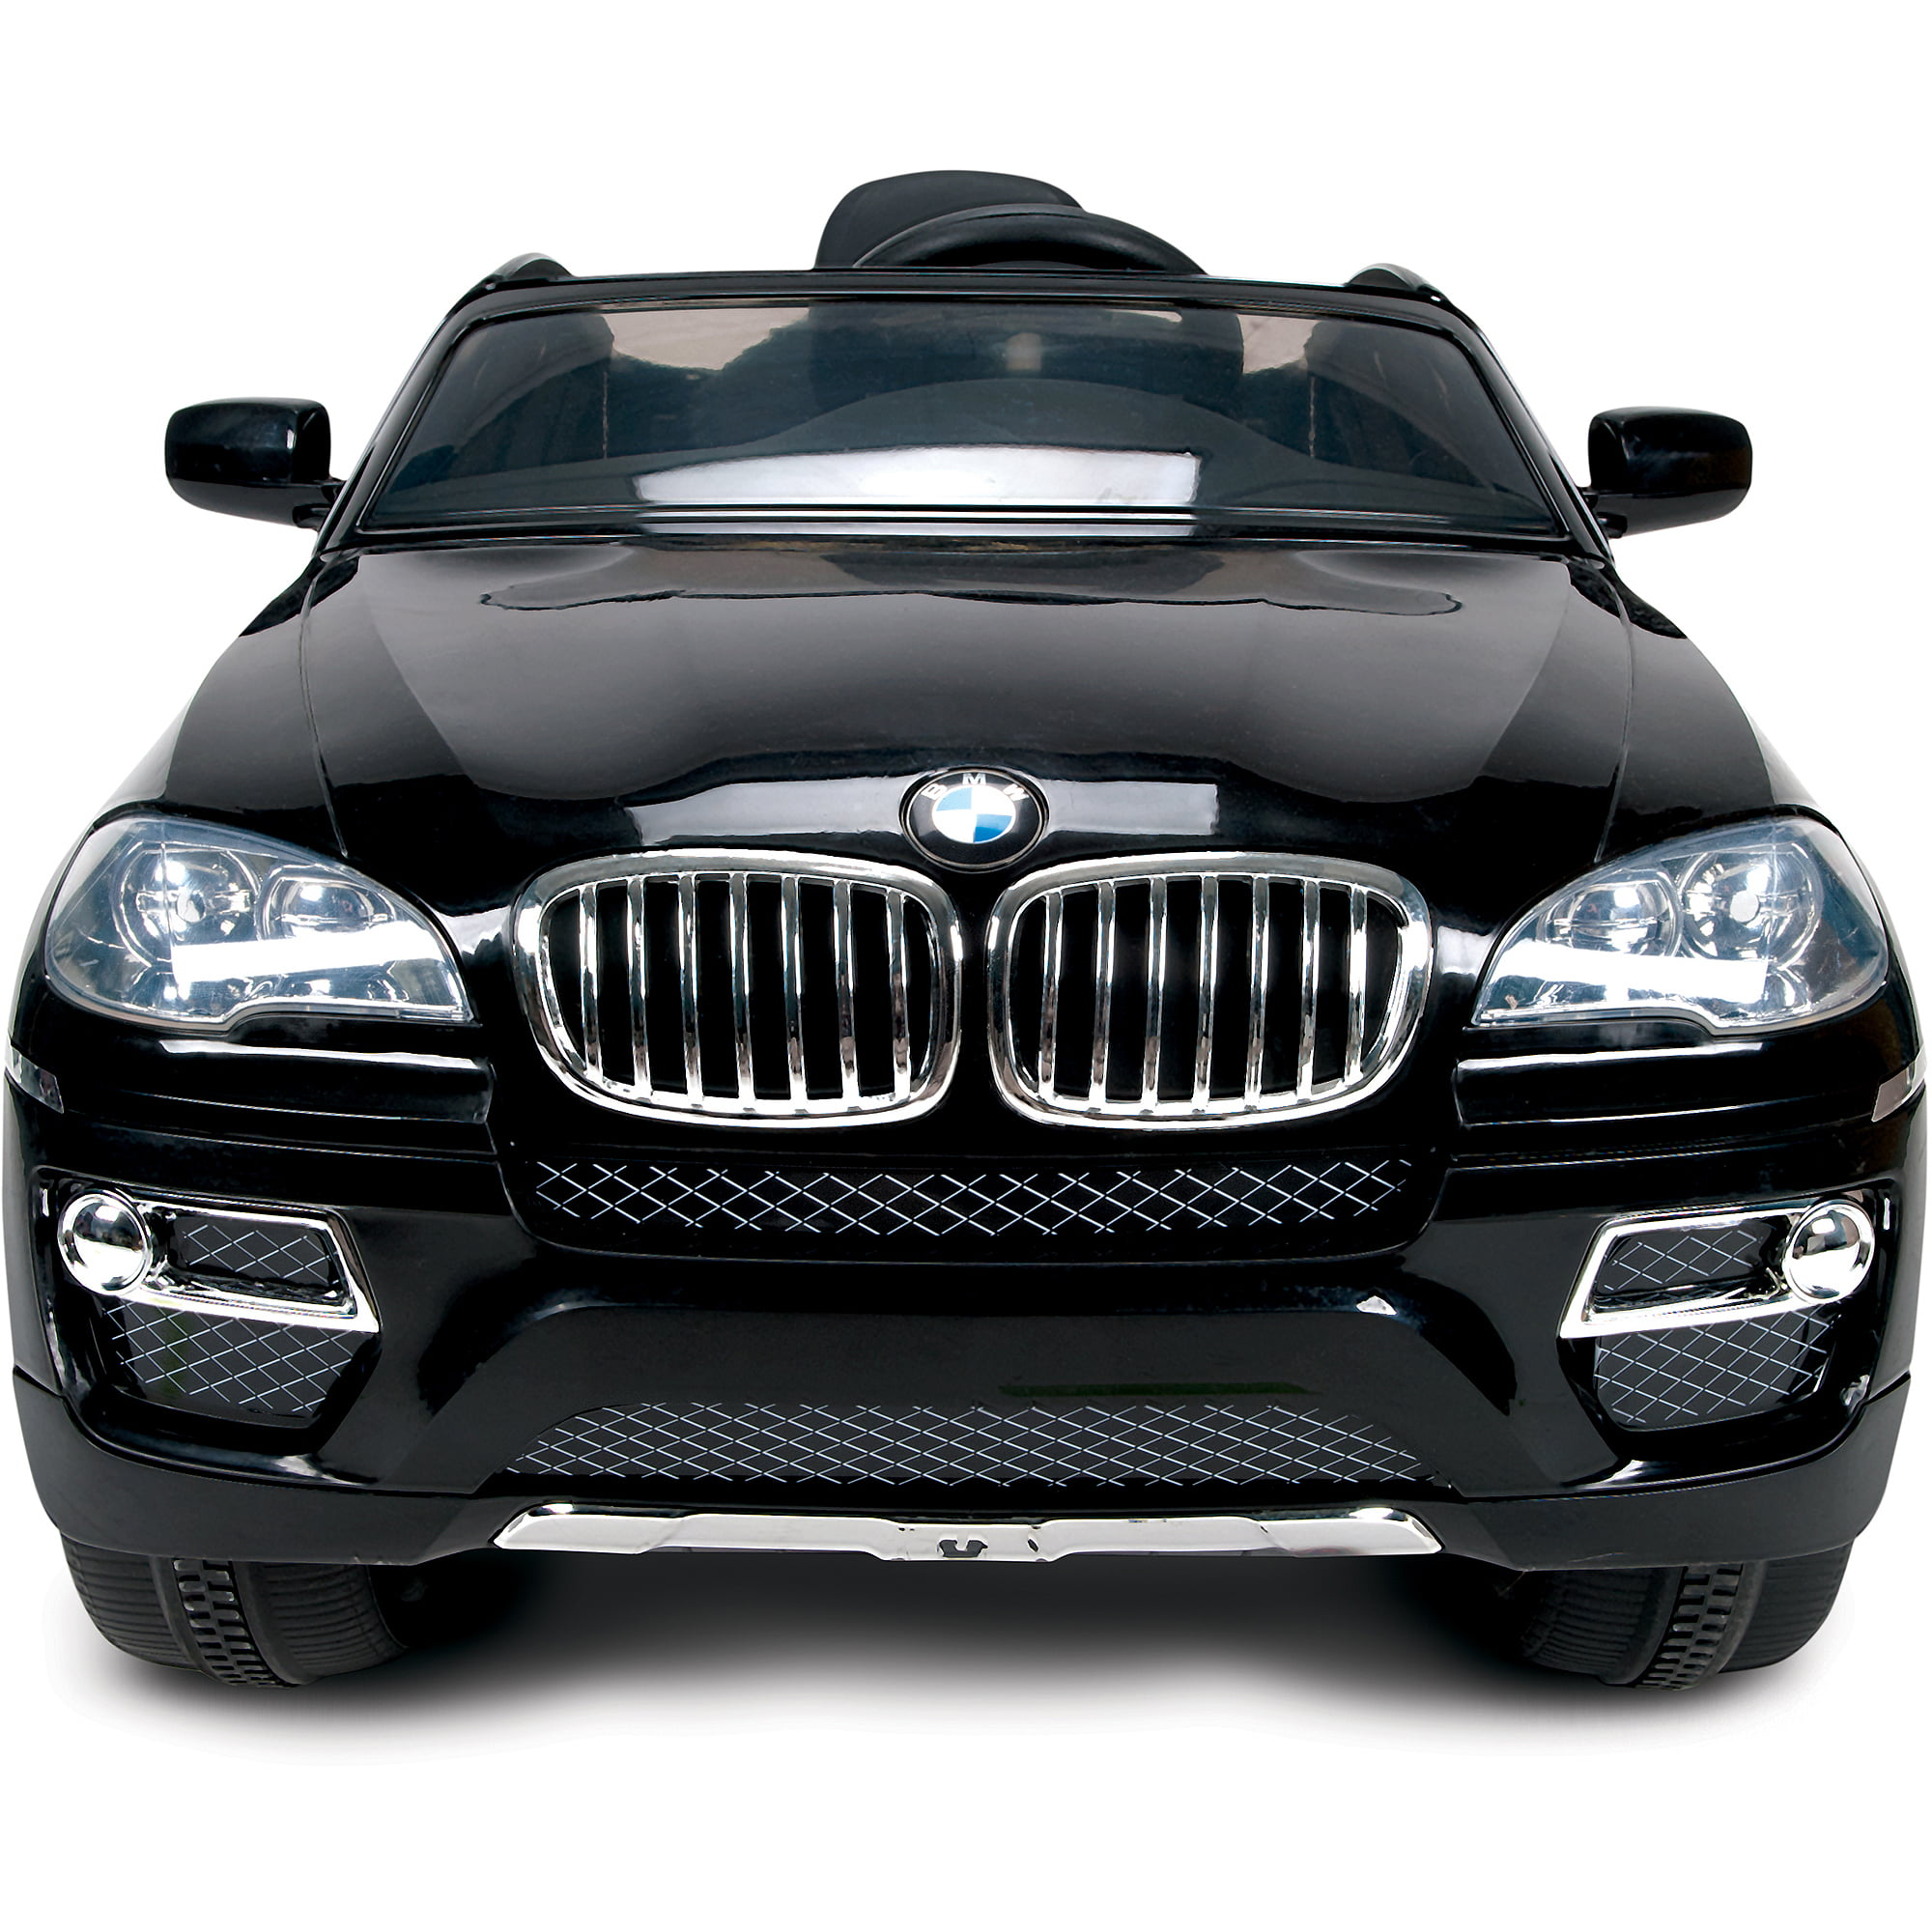 bmw x6 6-volt electric battery-powered ride-on toy,huffy